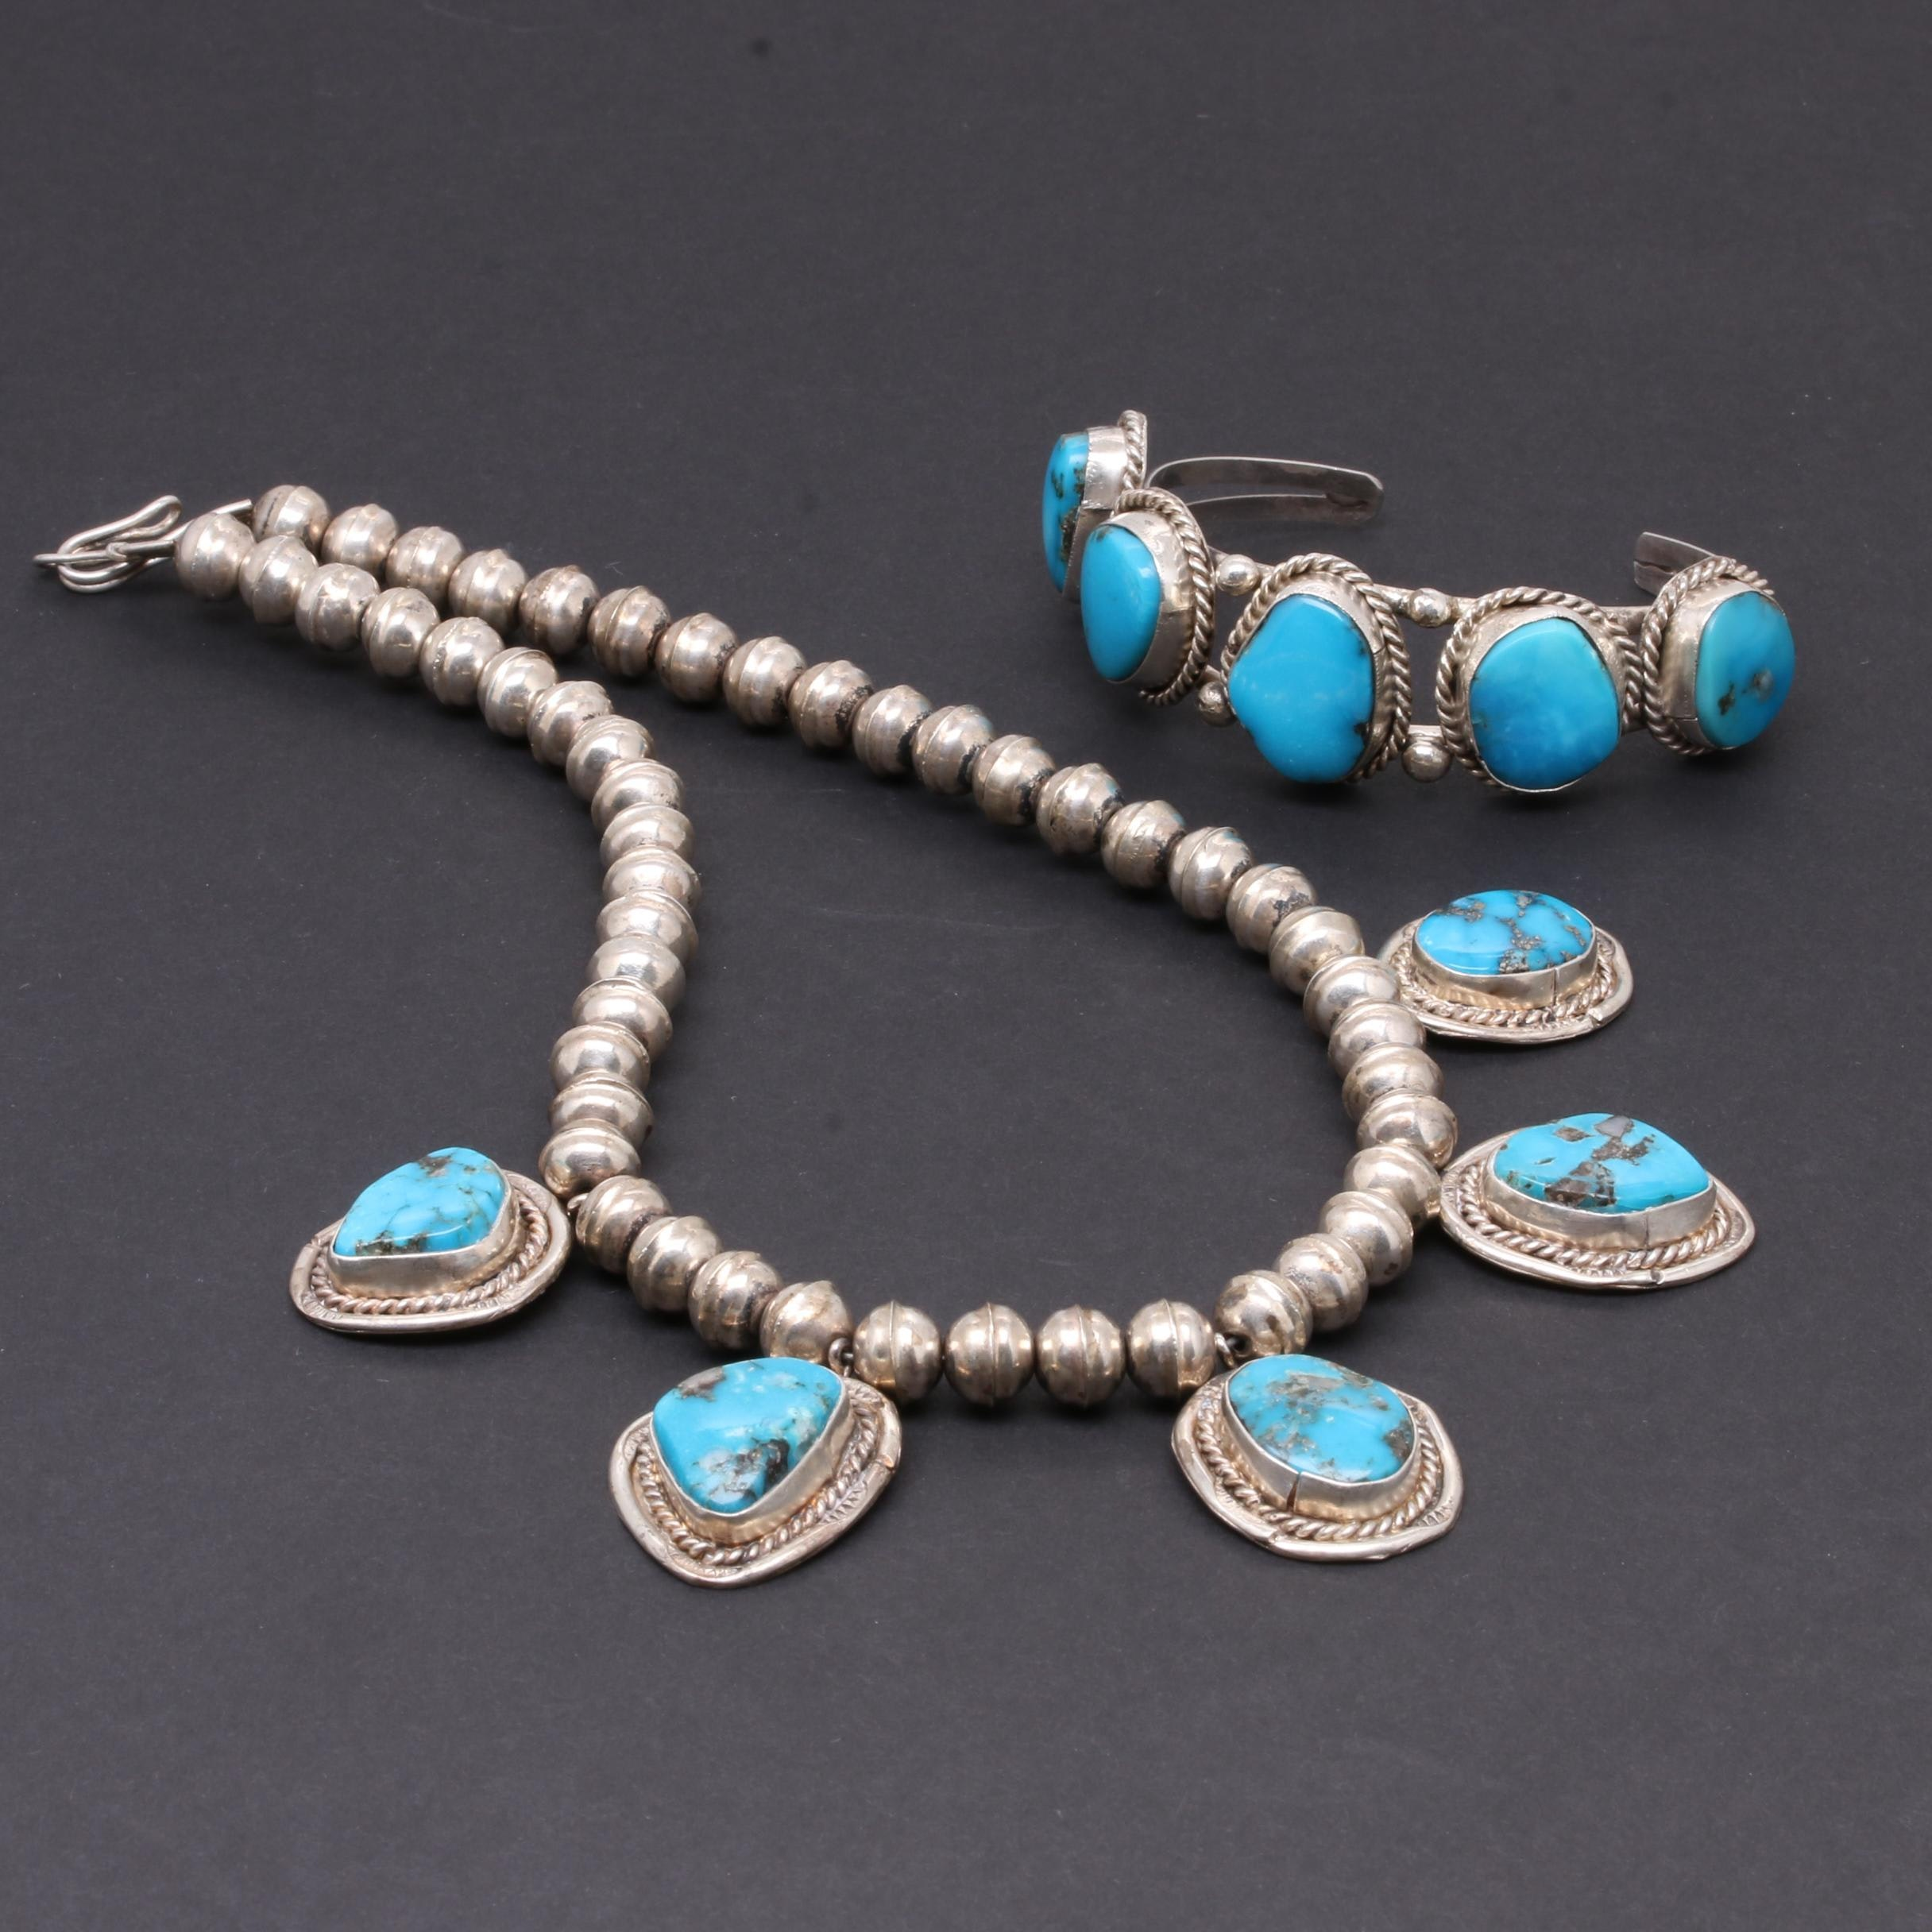 Southwestern Style Sterling Silver Stabilized Turquoise Bracelet and Necklace